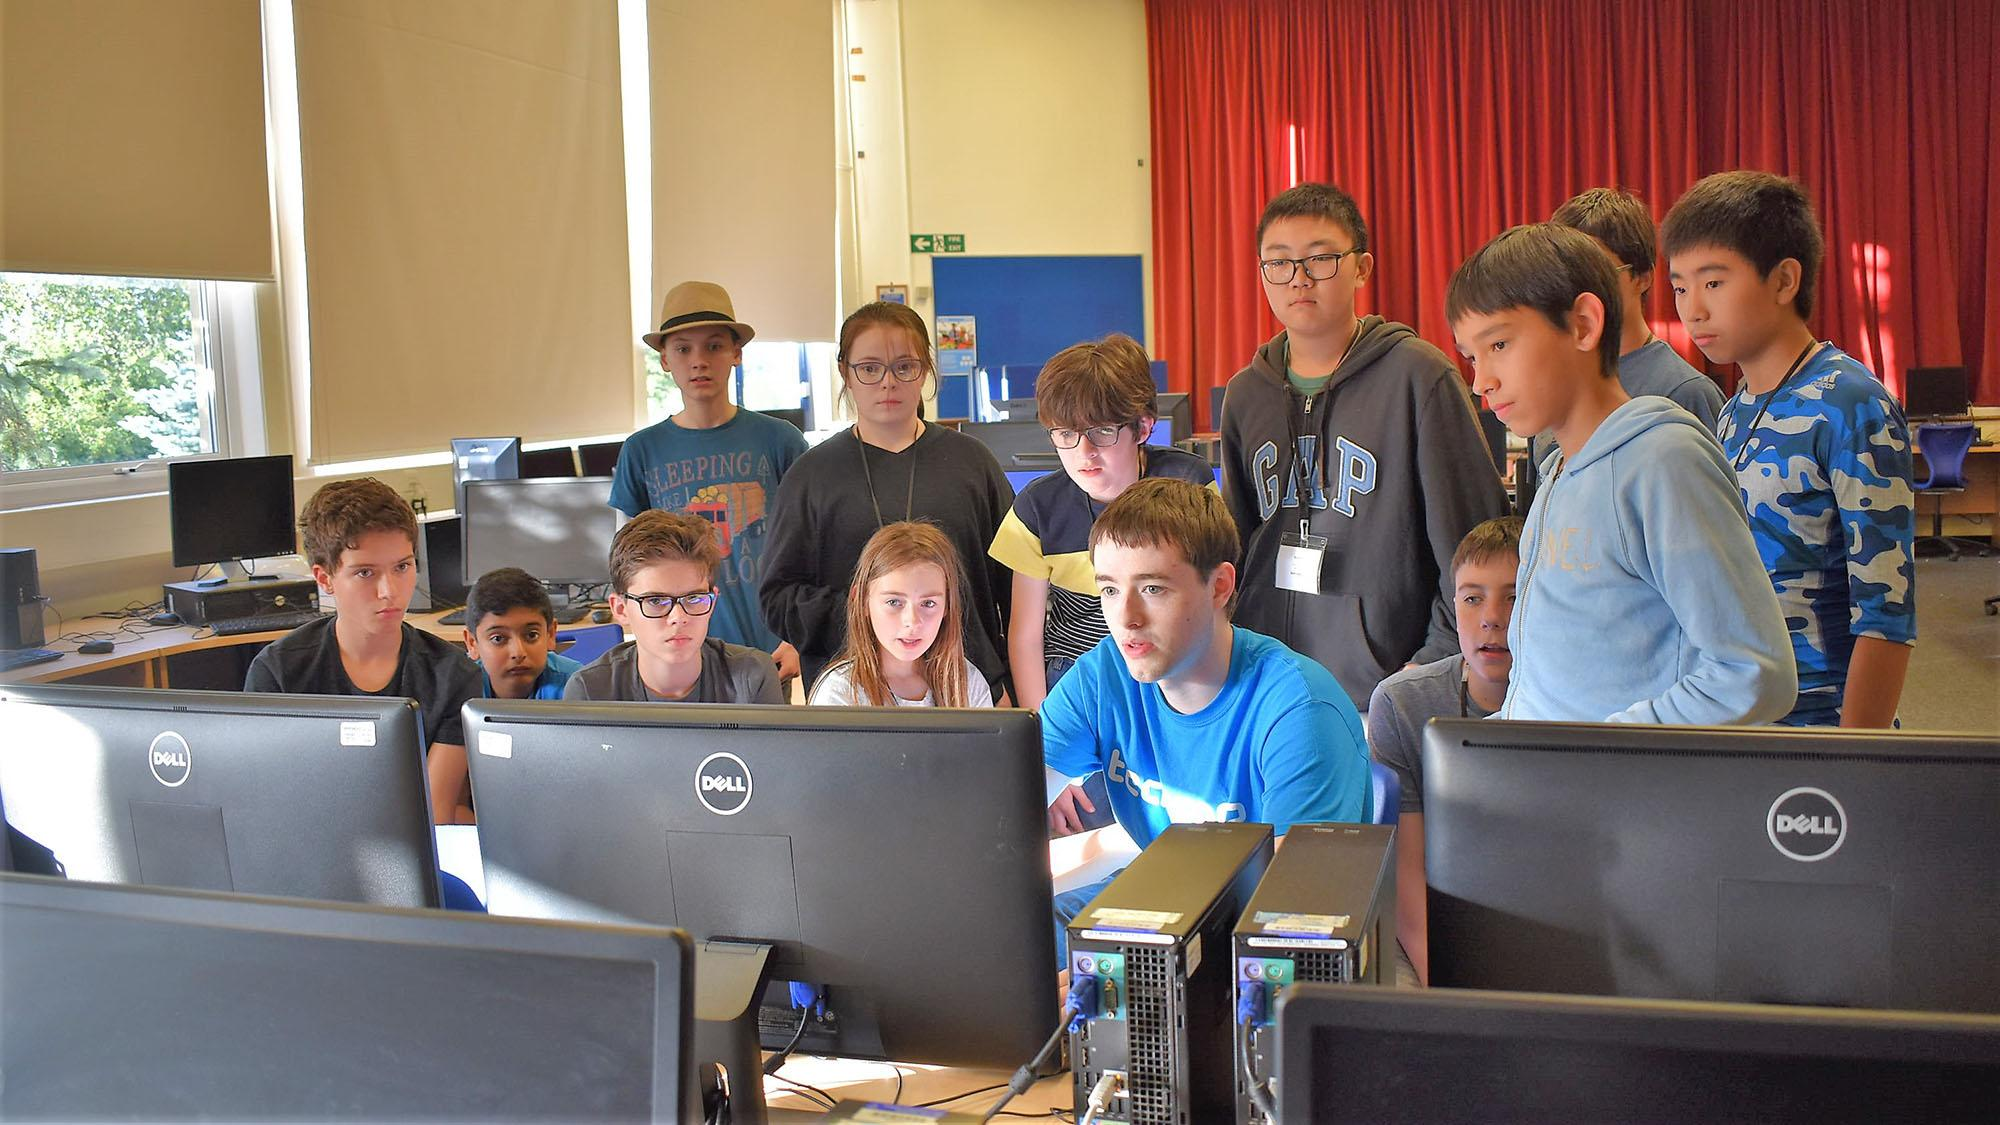 Teens and Tech Camp tutor gathered around a computer screen